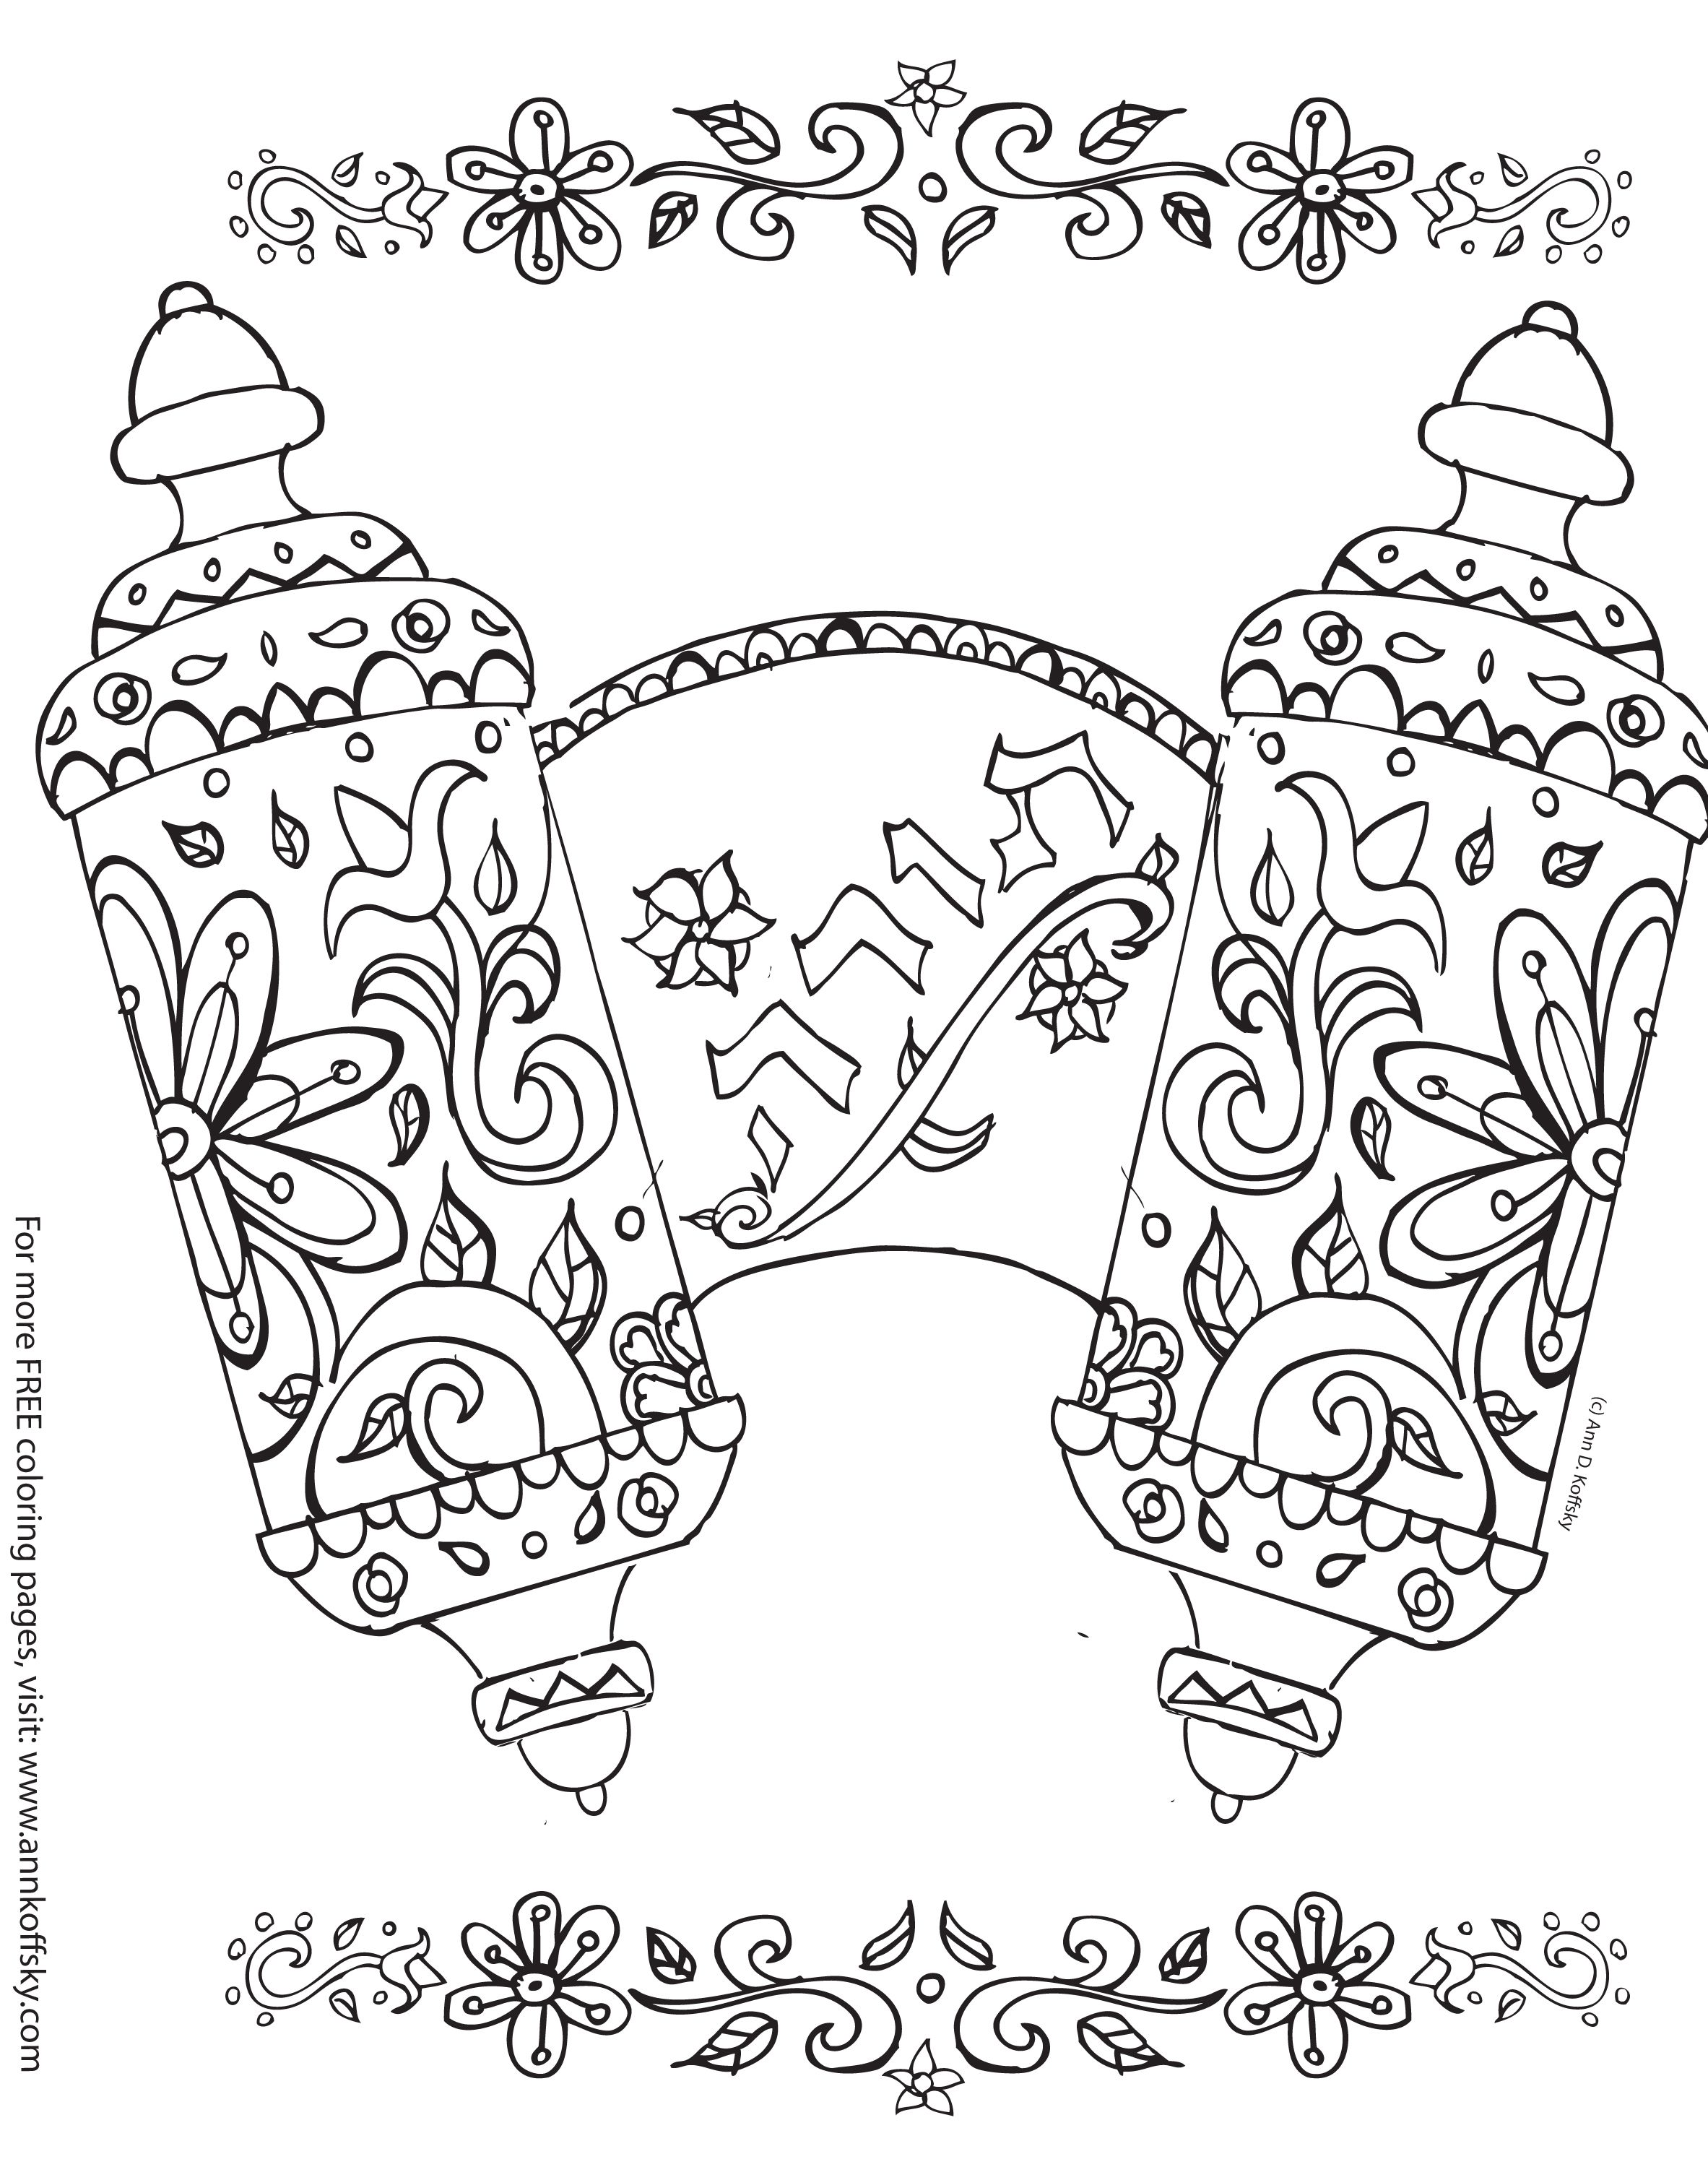 Uncategorized Torah Coloring Pages beyond the educational virtues coloring sessions allow us adults a little peace